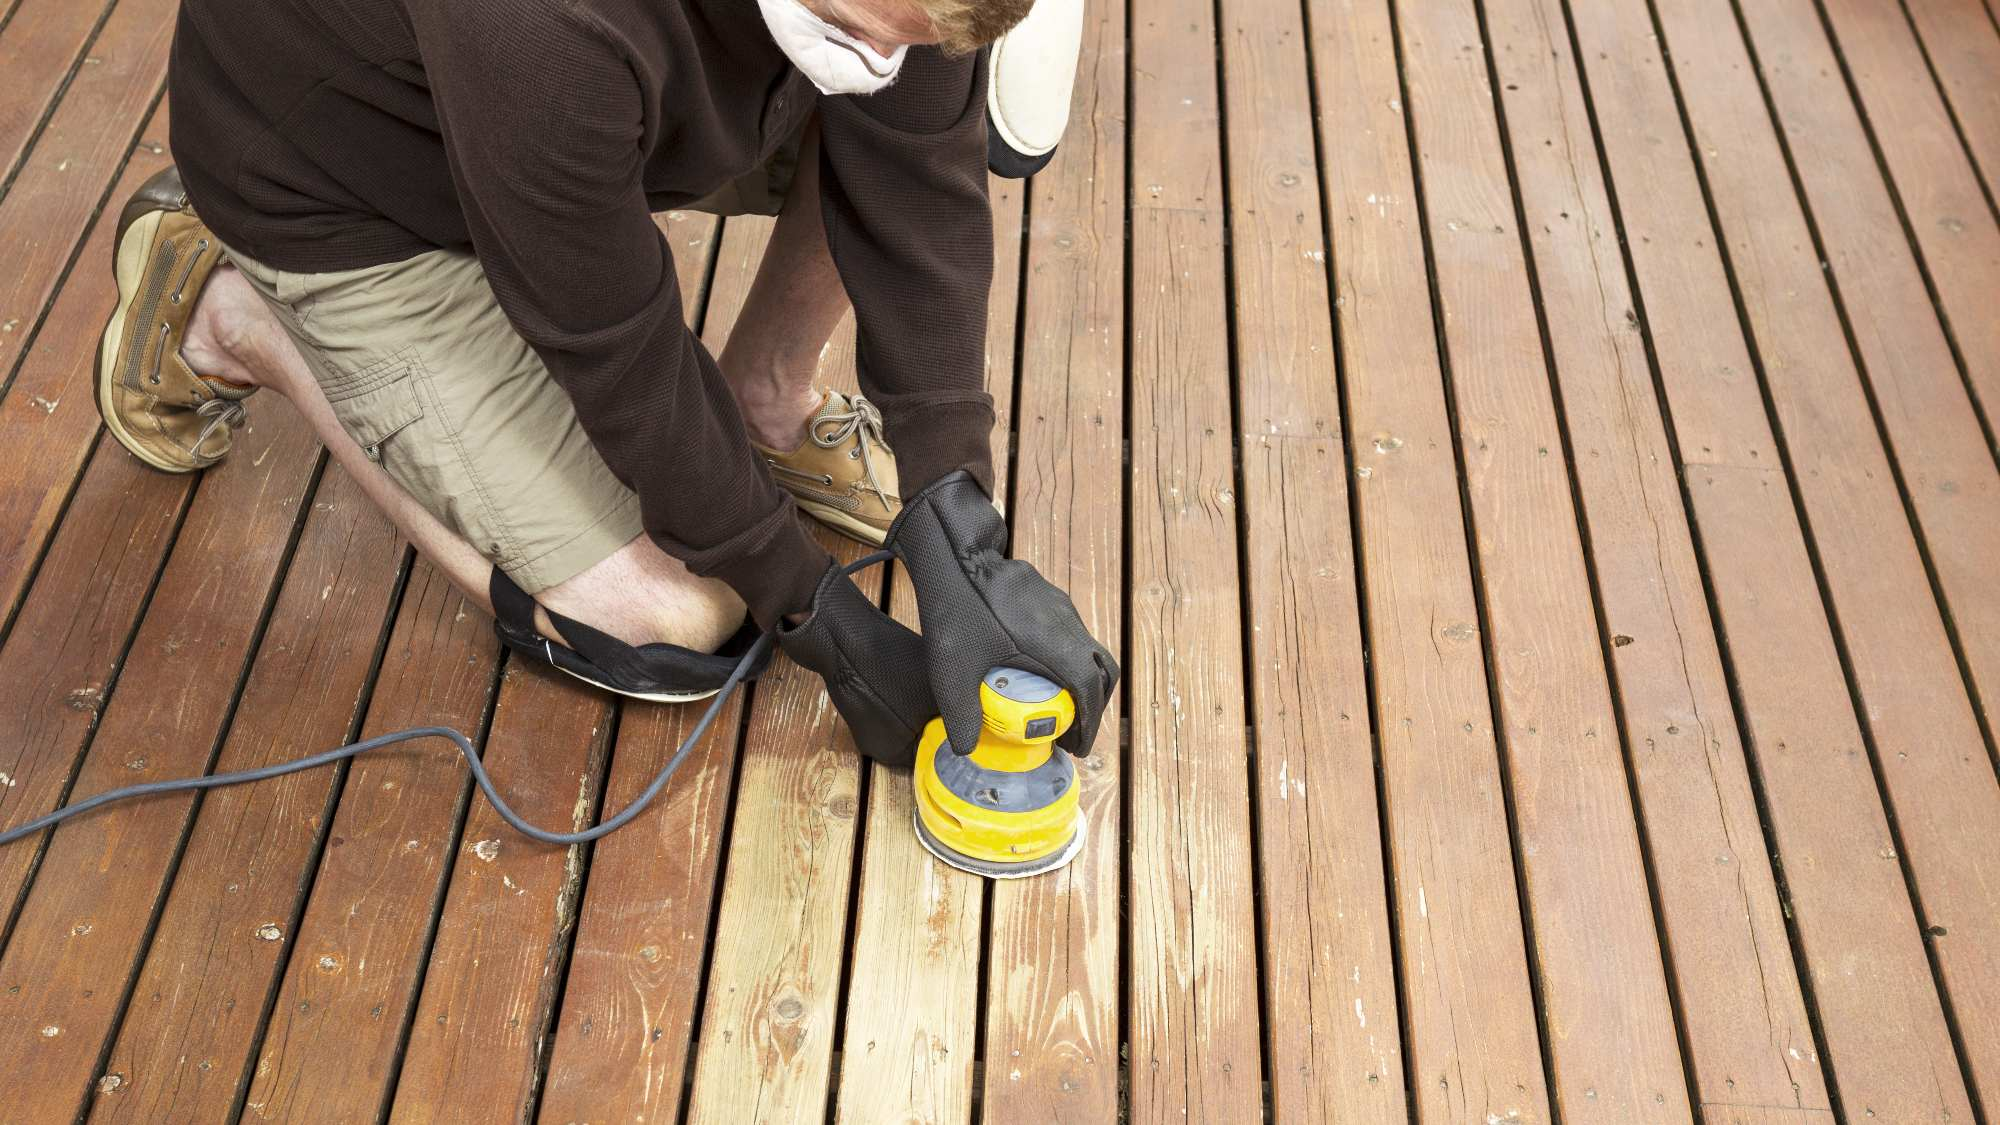 person sanding a deck with an electric sander